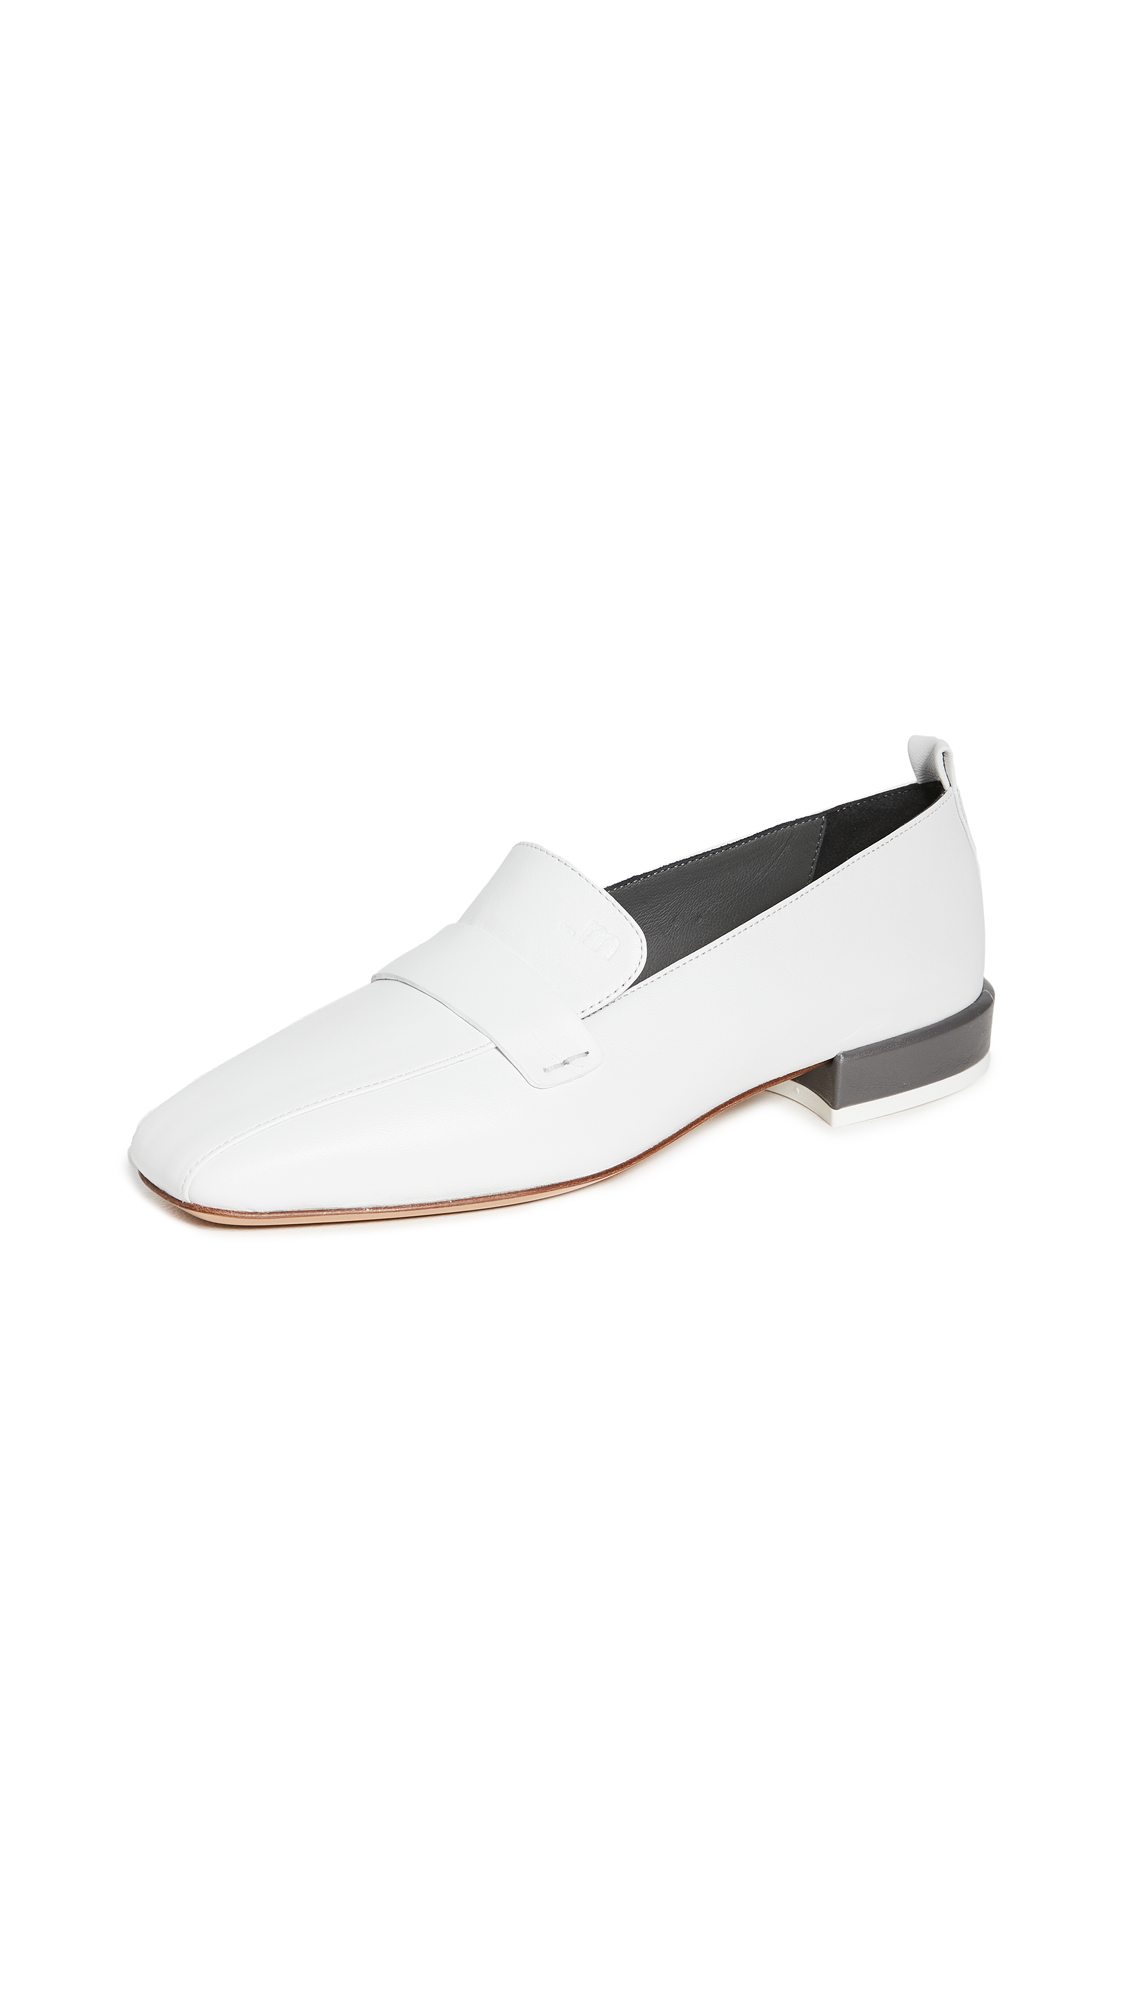 Buy Gray Matters Comoda Loafers online, shop Gray Matters